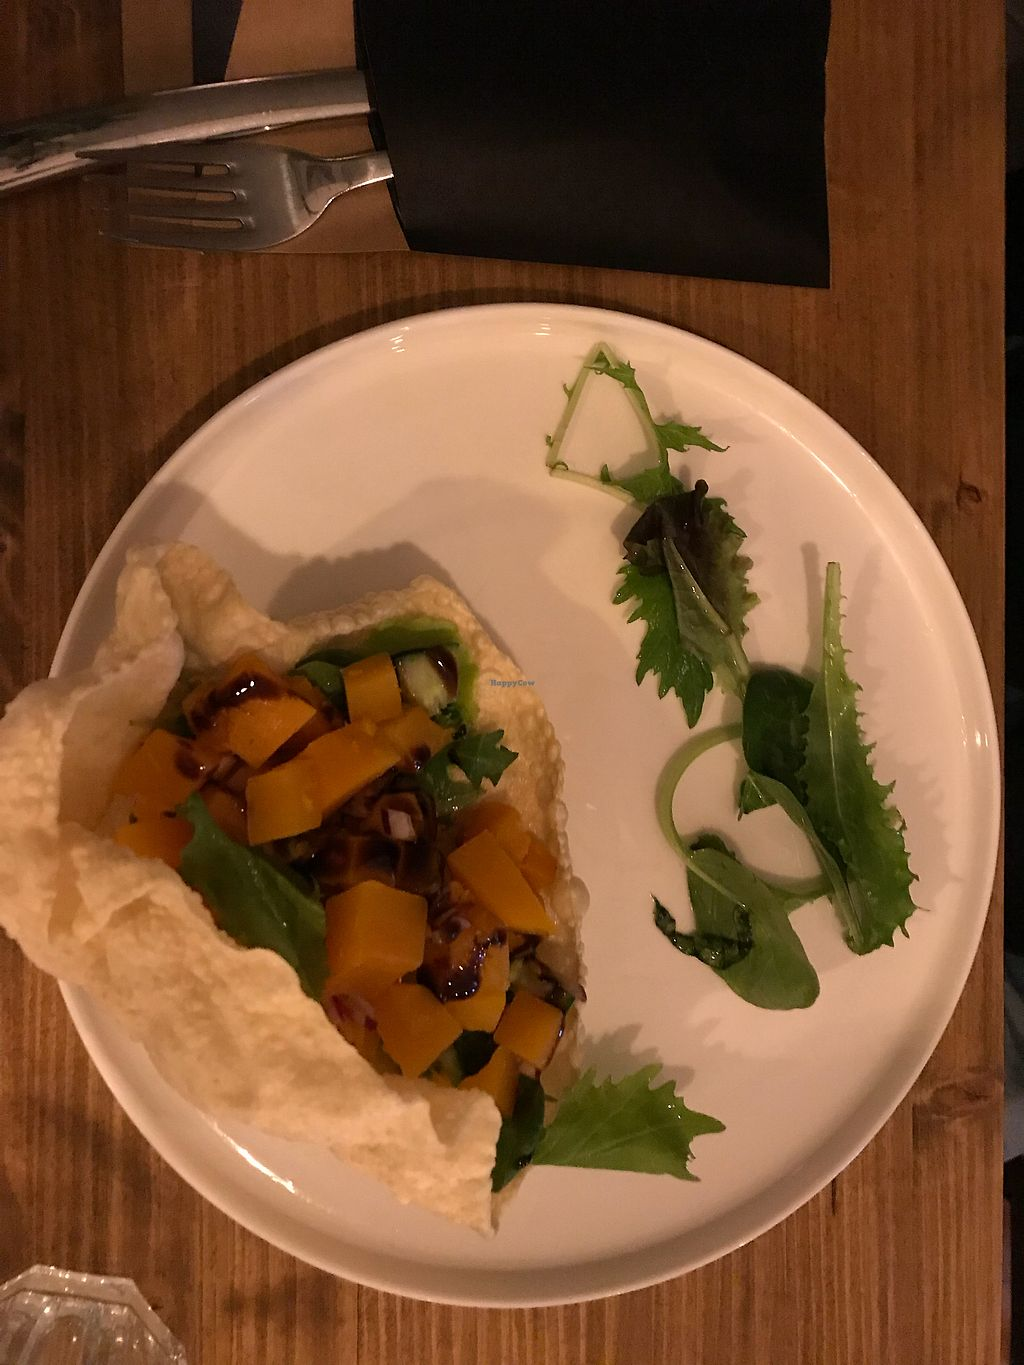 """Photo of Eetkamer Everydays  by <a href=""""/members/profile/Charlottez"""">Charlottez</a> <br/>Starter, pumpkin salad with papadum <br/> October 28, 2017  - <a href='/contact/abuse/image/103811/319414'>Report</a>"""